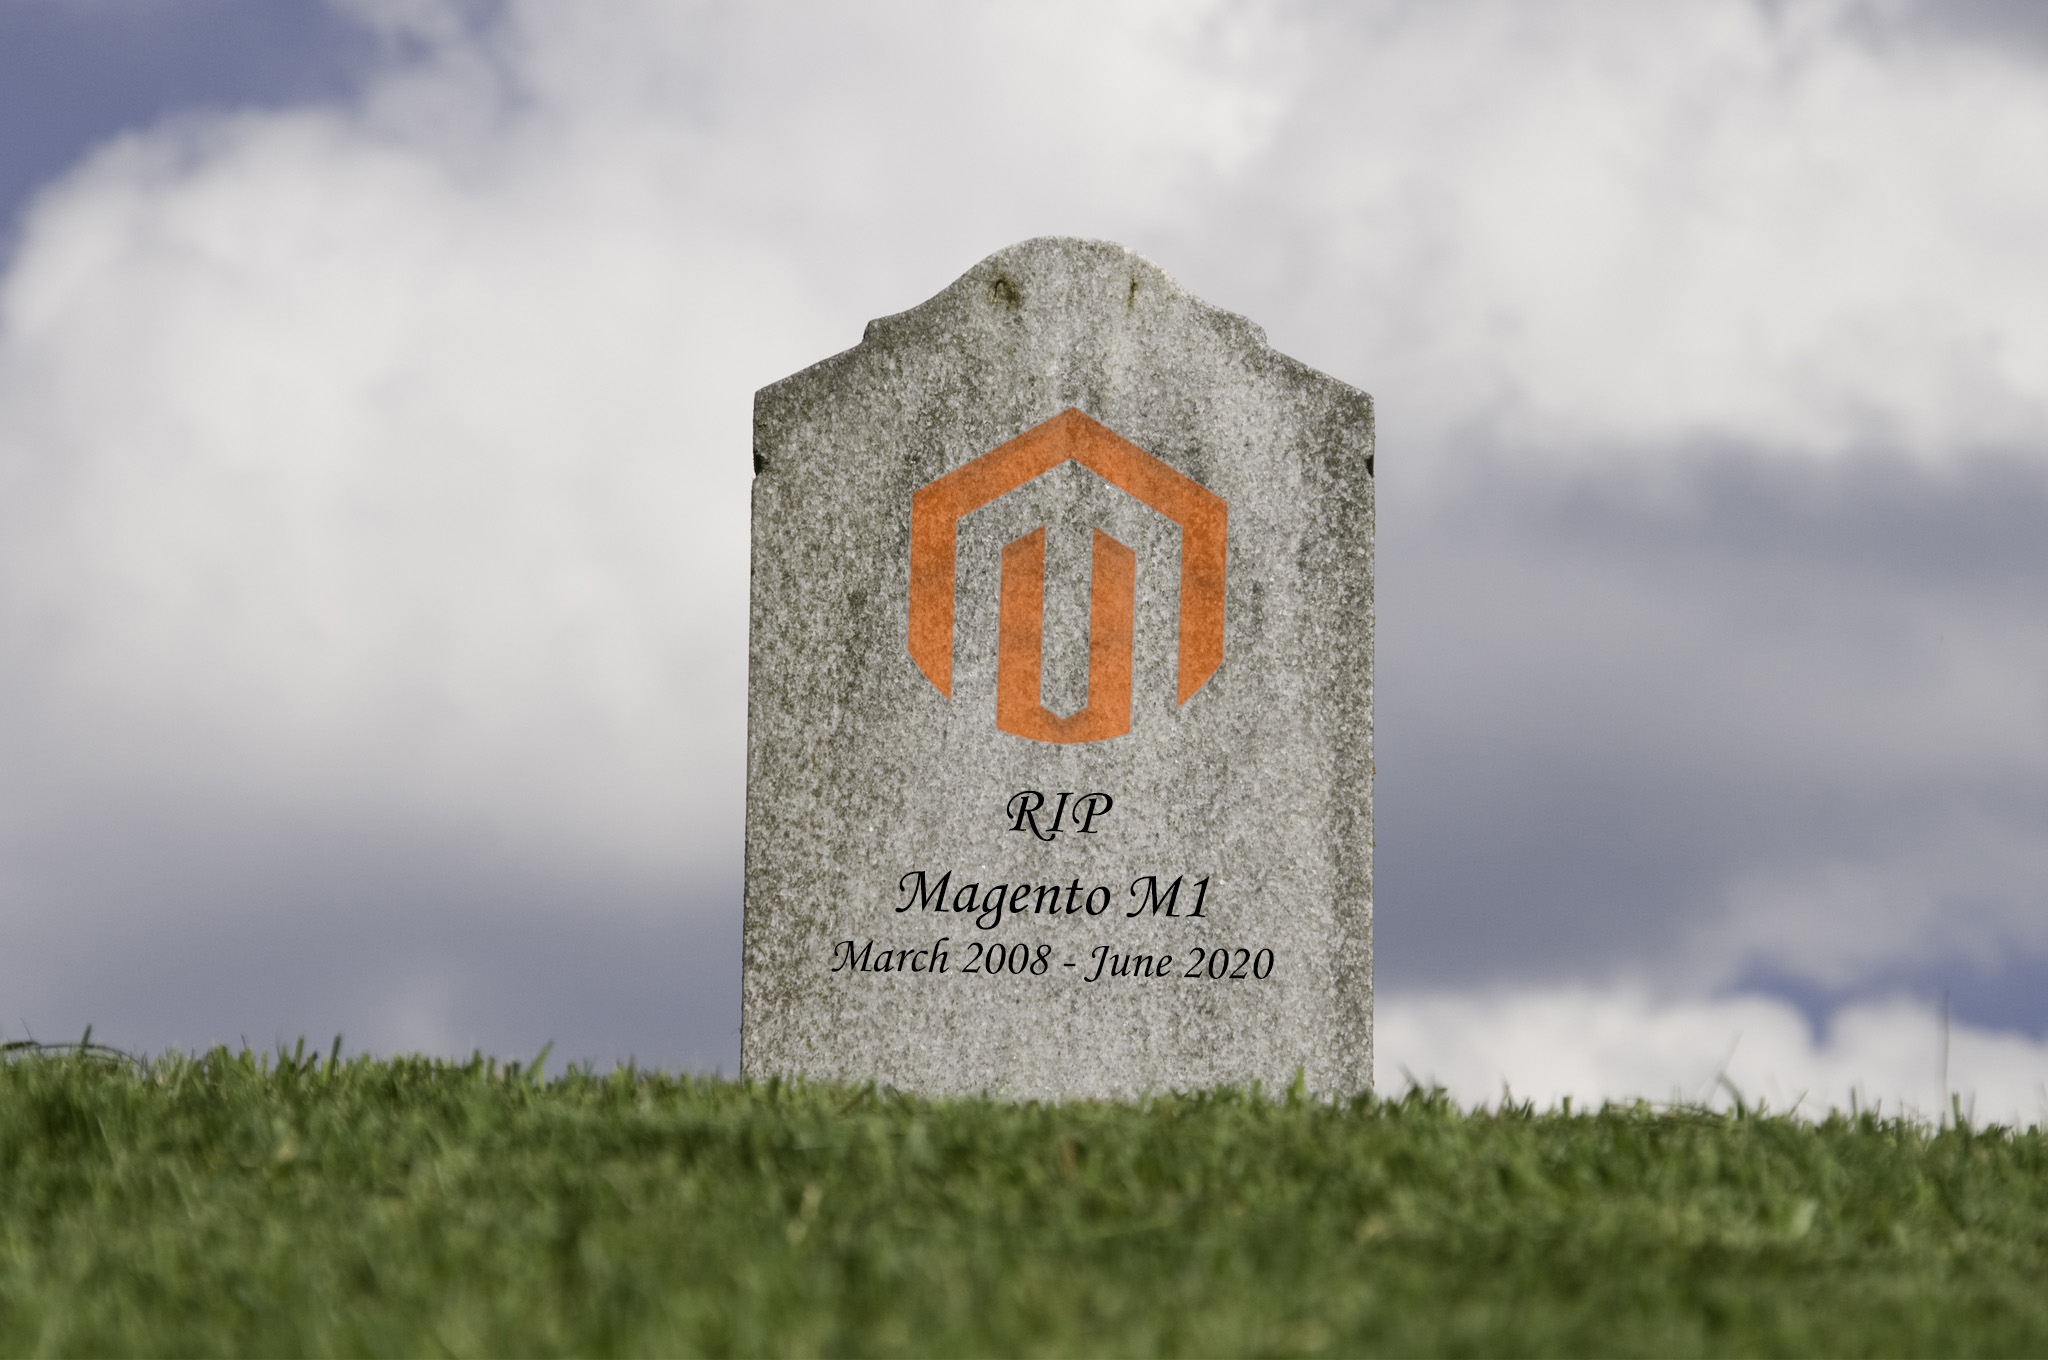 With Magento 1 reaching End Of Life what are my options?